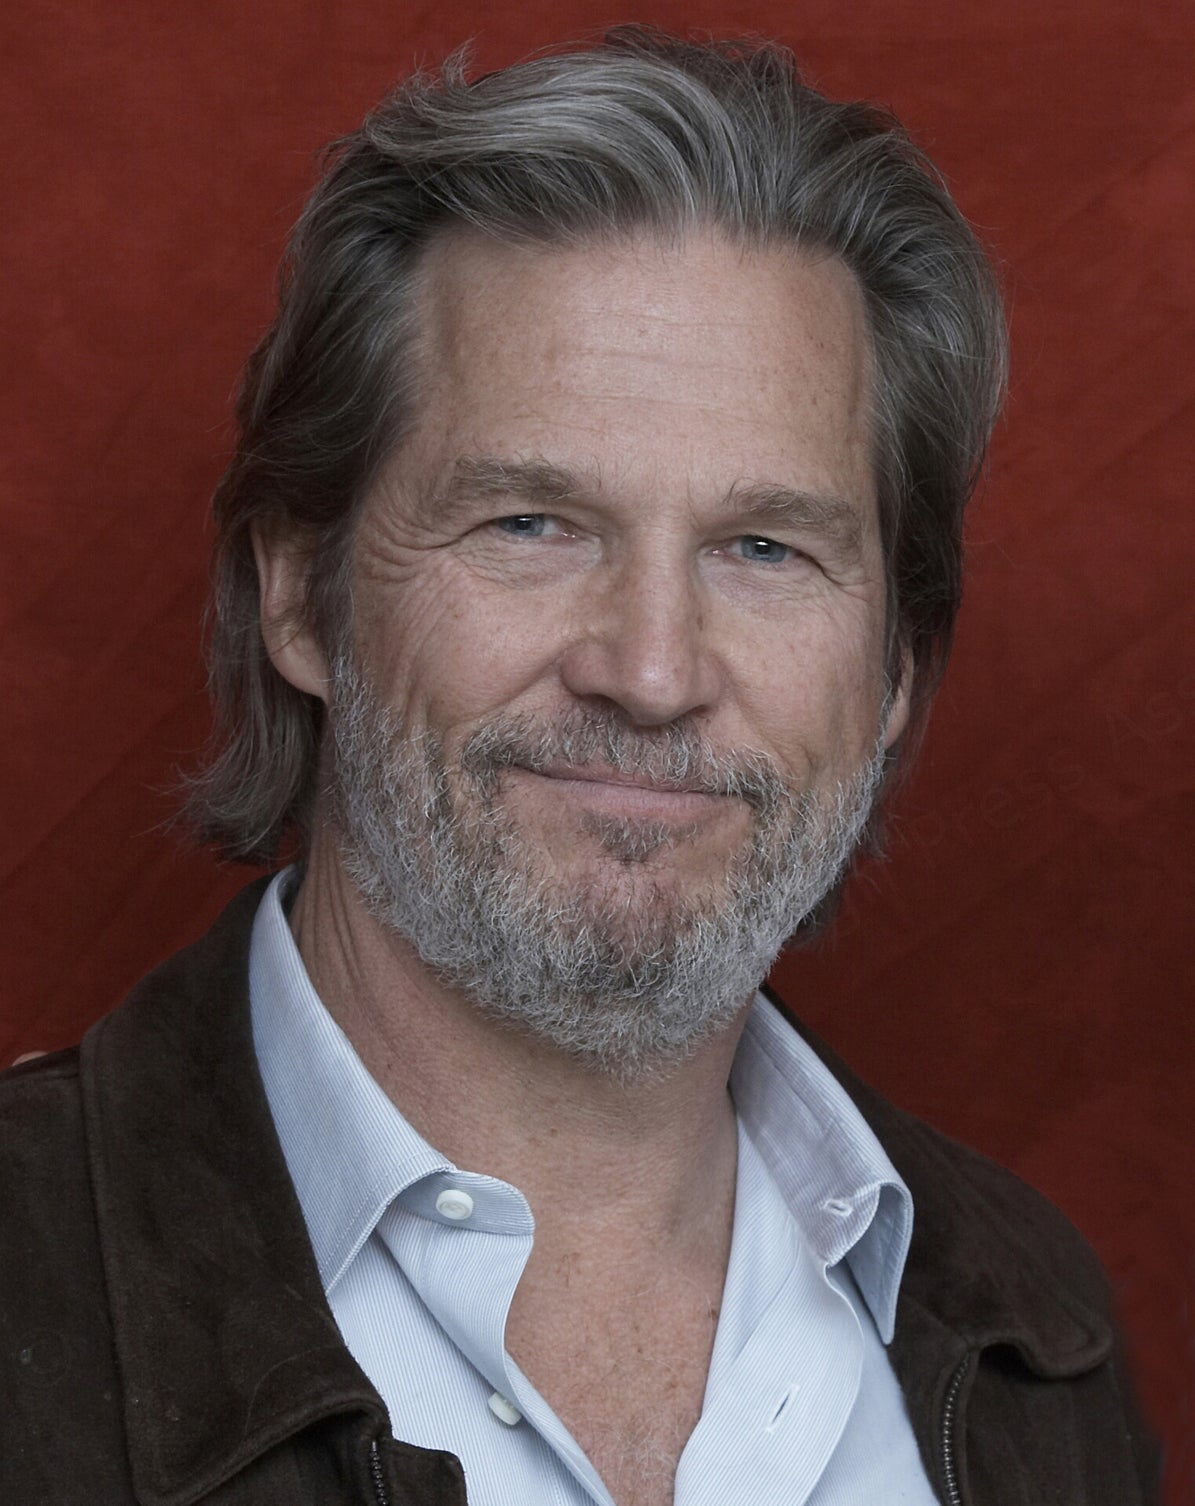 The 70-year old son of father (?) and mother(?) Jeff Bridges in 2020 photo. Jeff Bridges earned a  million dollar salary - leaving the net worth at  million in 2020